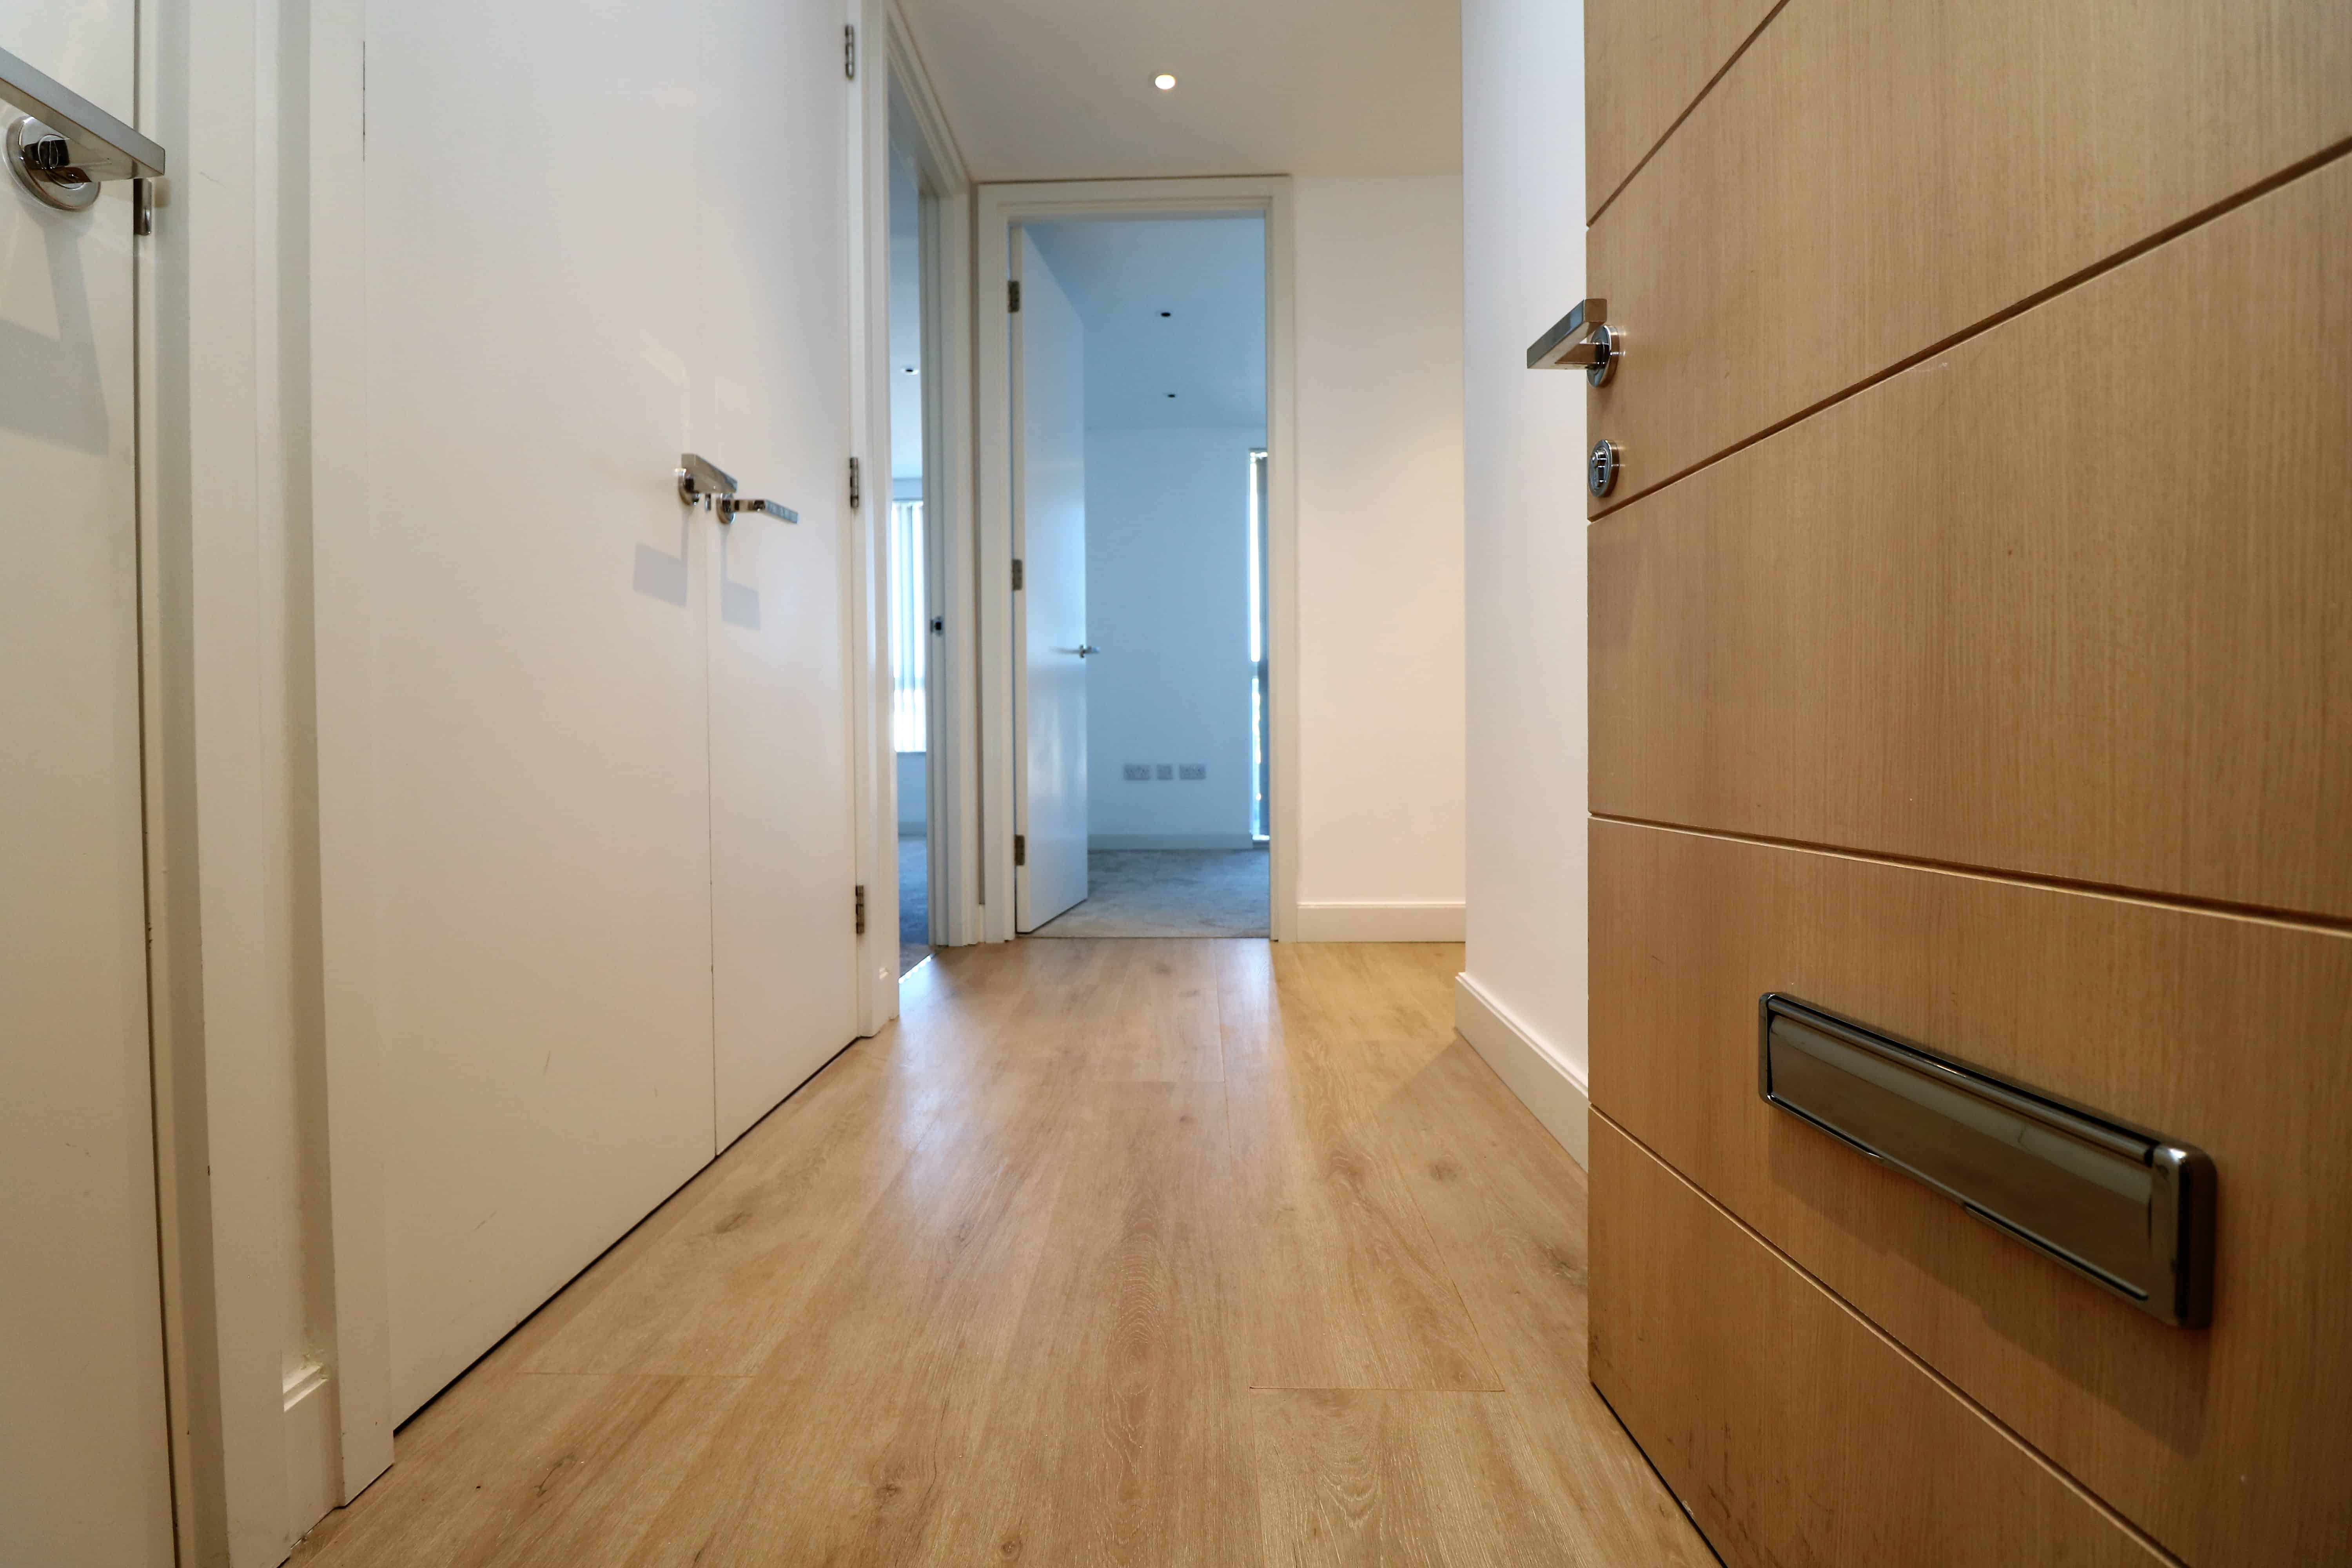 Third floor two bed apartment with two bathroom and modern stylish living quarters in the leafy area of Hornsey, N8